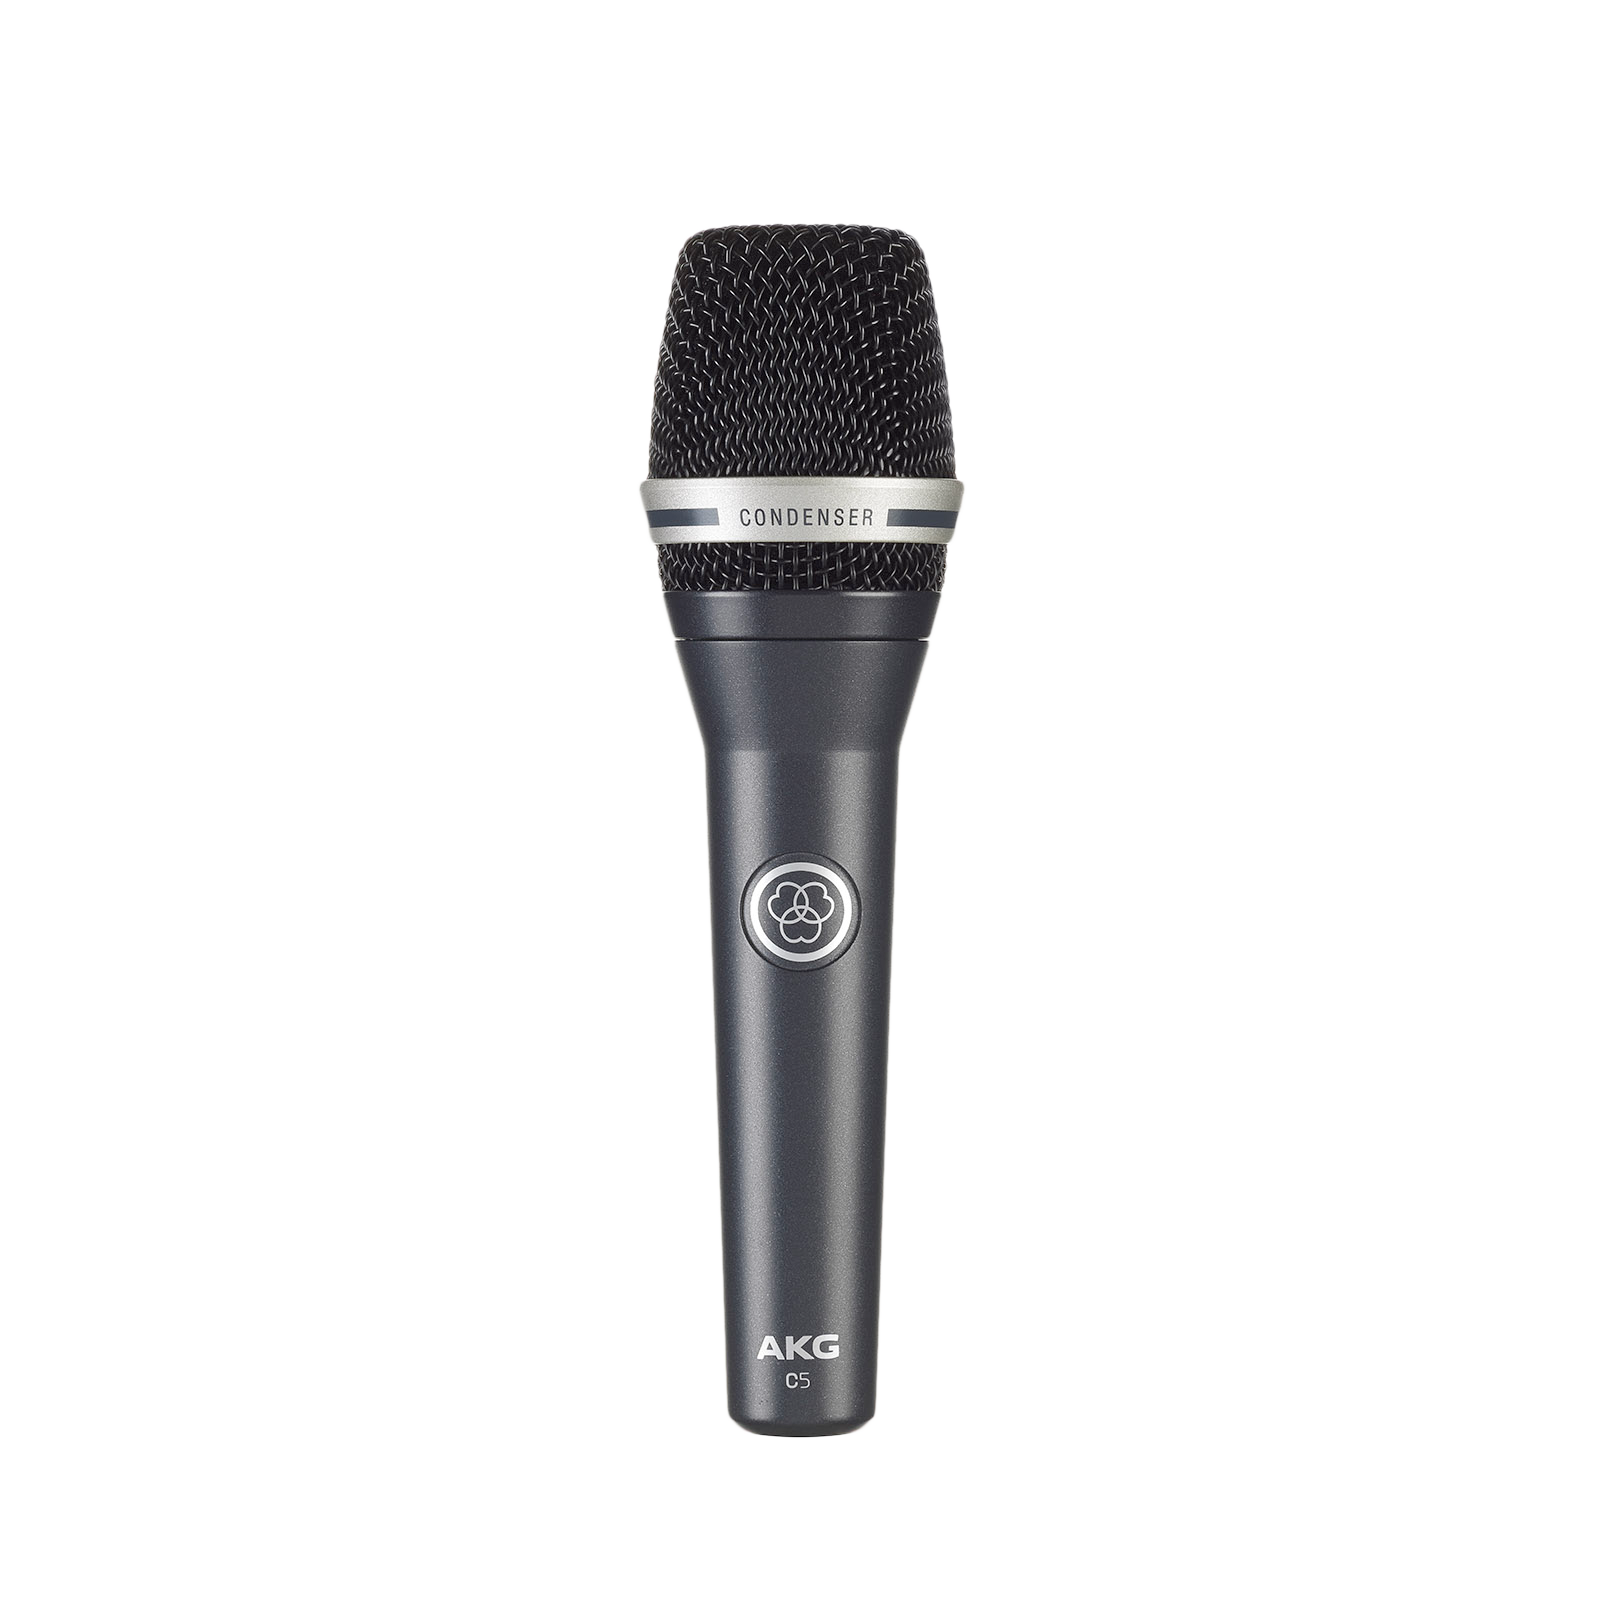 AKG Pro Audio C5 Professional Condenser Vocal Microphone - 305broadcast